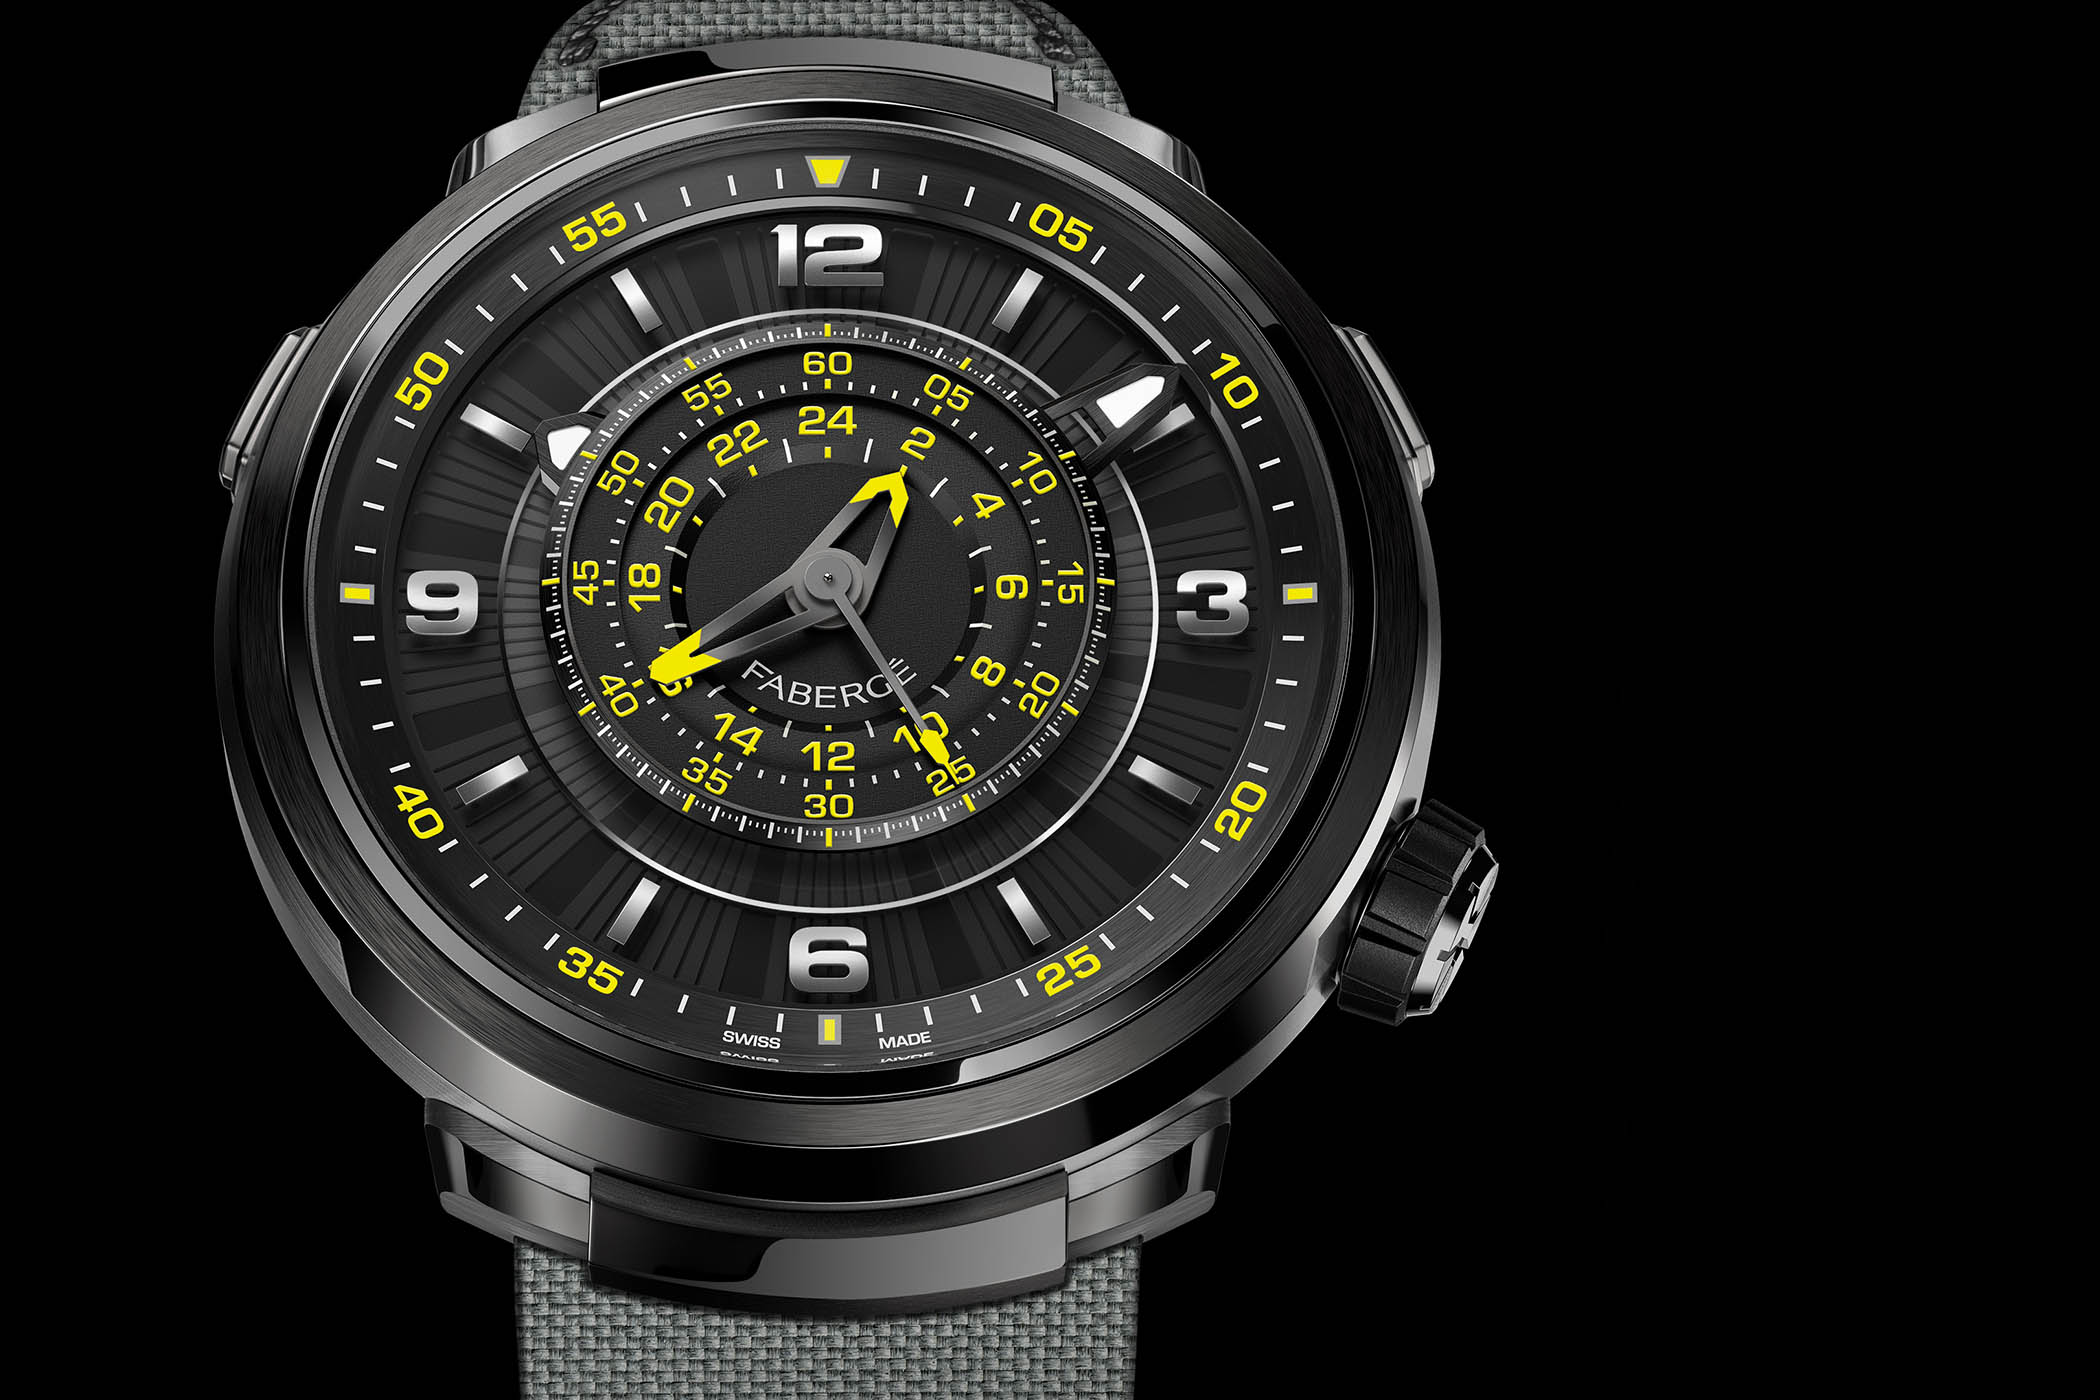 Only Watch 2017 – Unique Black-and-Yellow Fabergé Visionnaire Chronograph (with revolutionary movement)